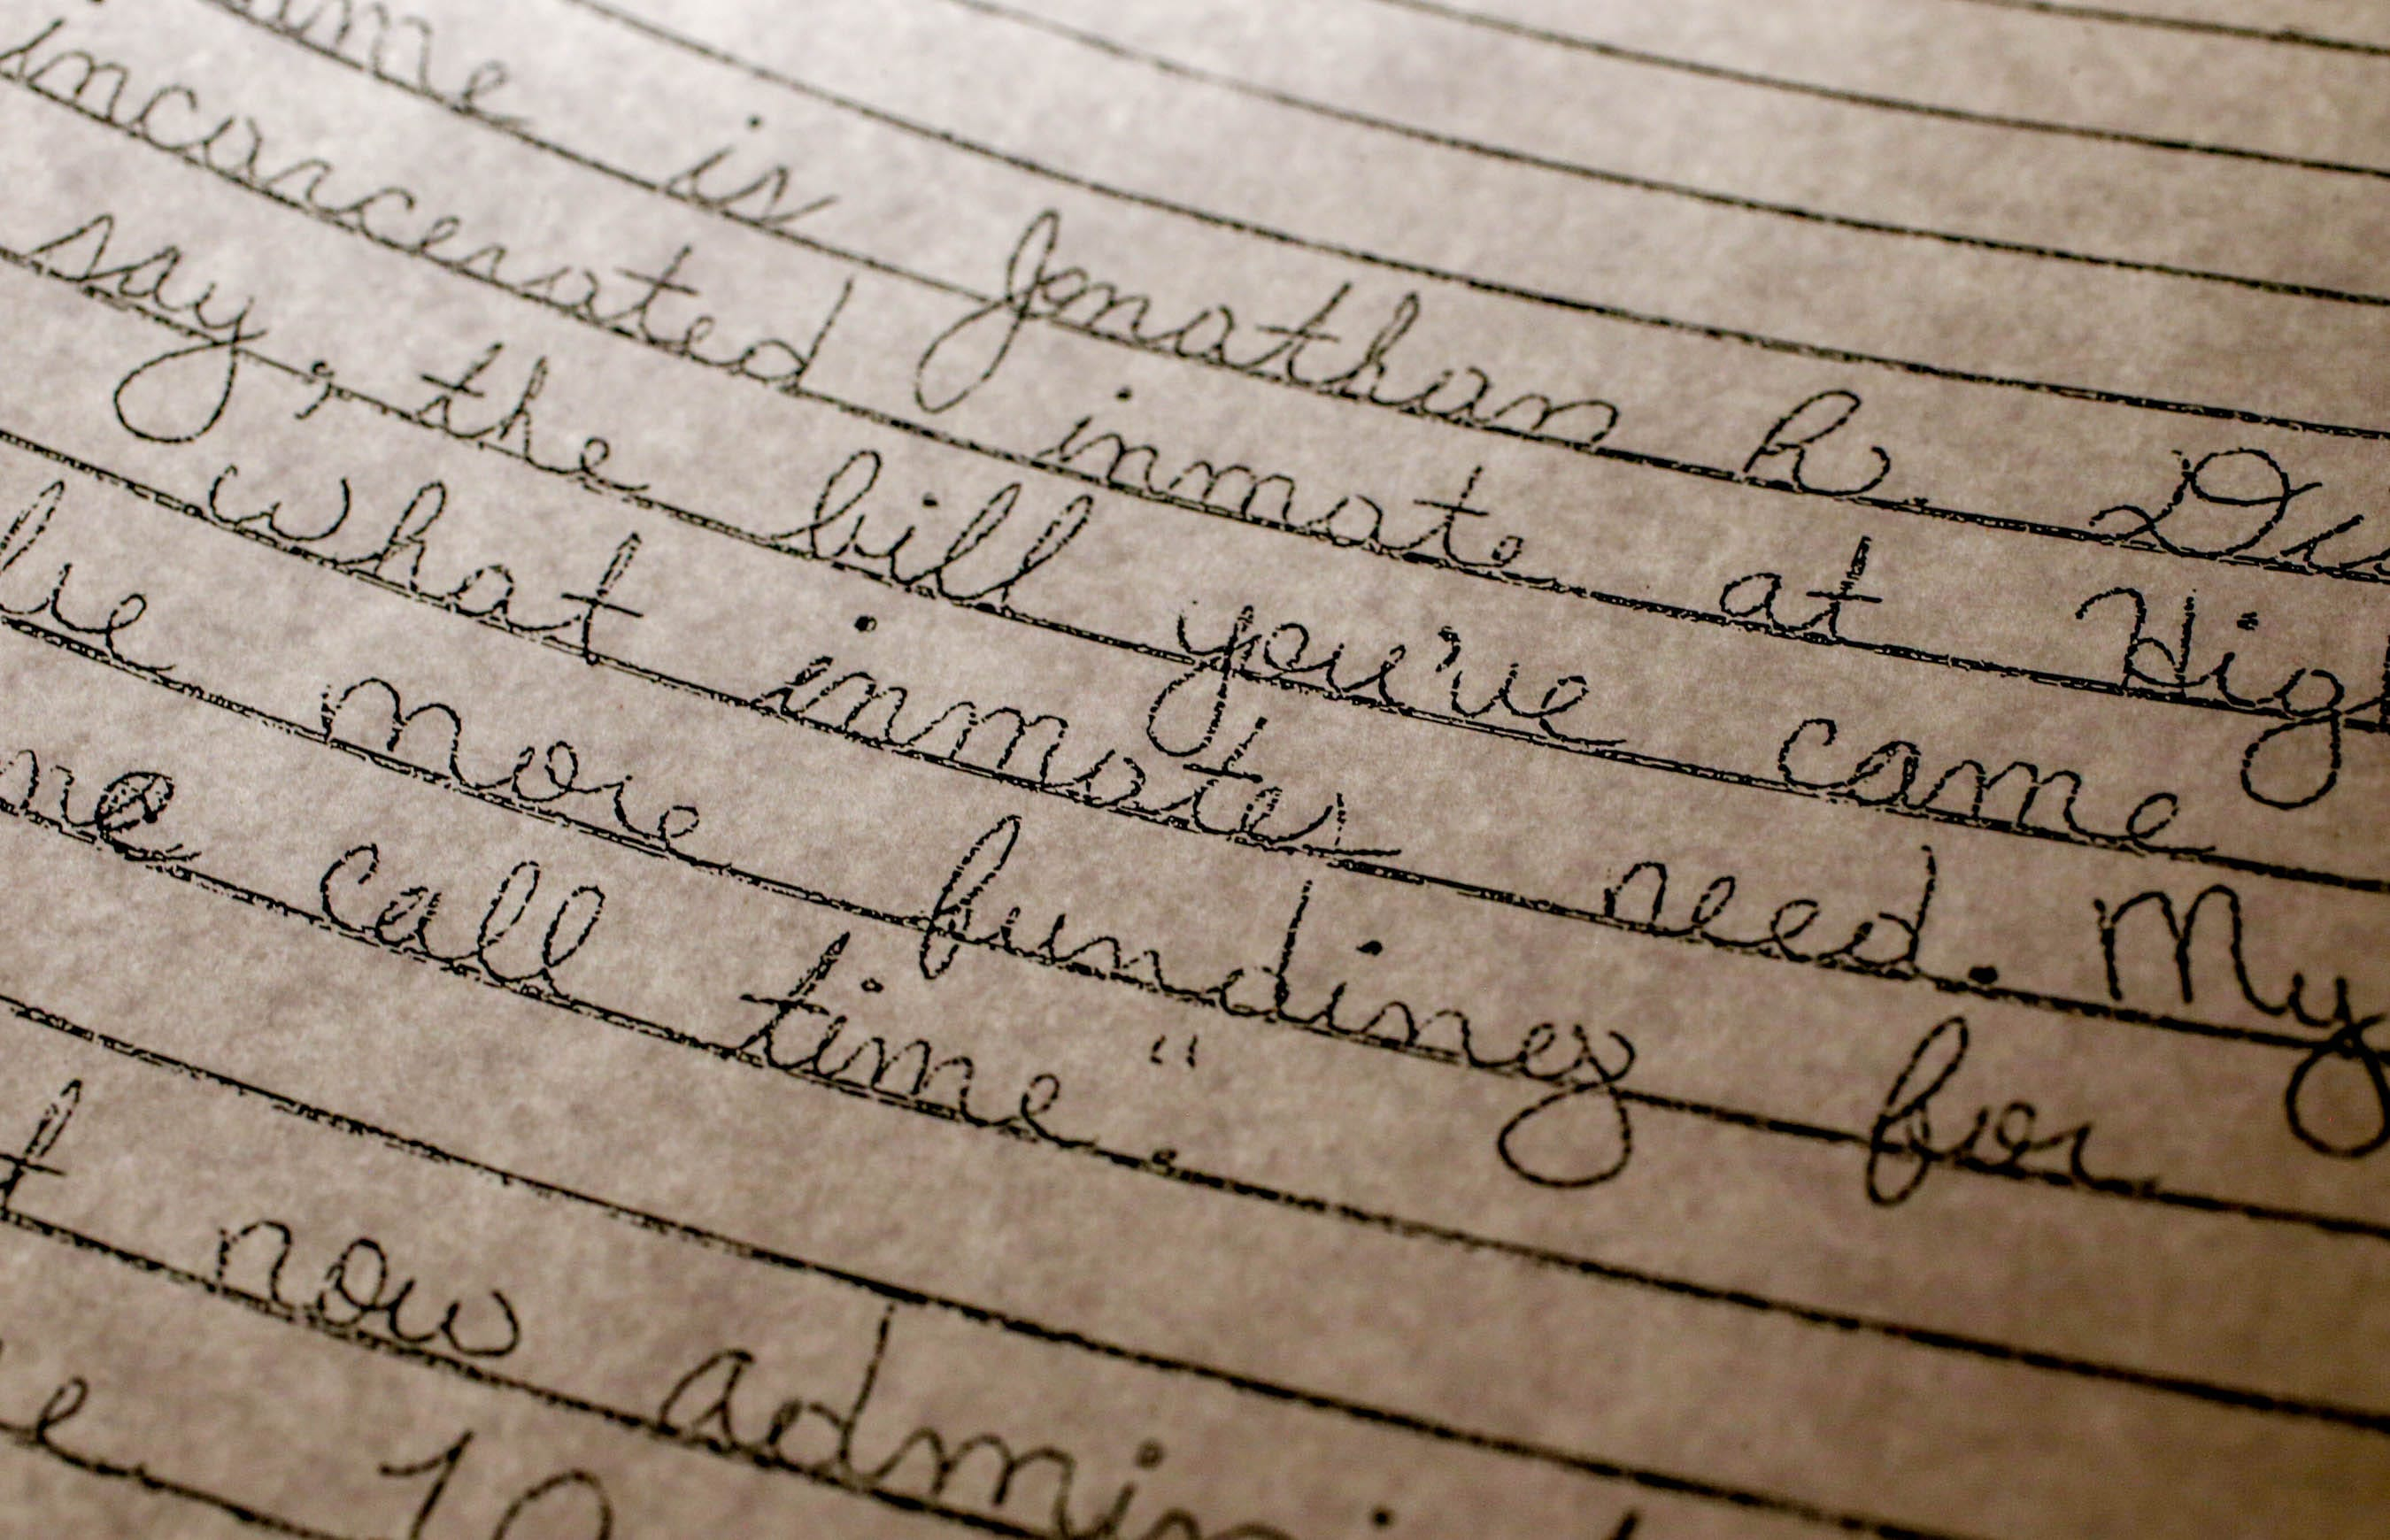 One of the dozens of letters written by inmates at the ACI, urging passage of a bill that would limit the use of solitary confinement in Rhode Island.